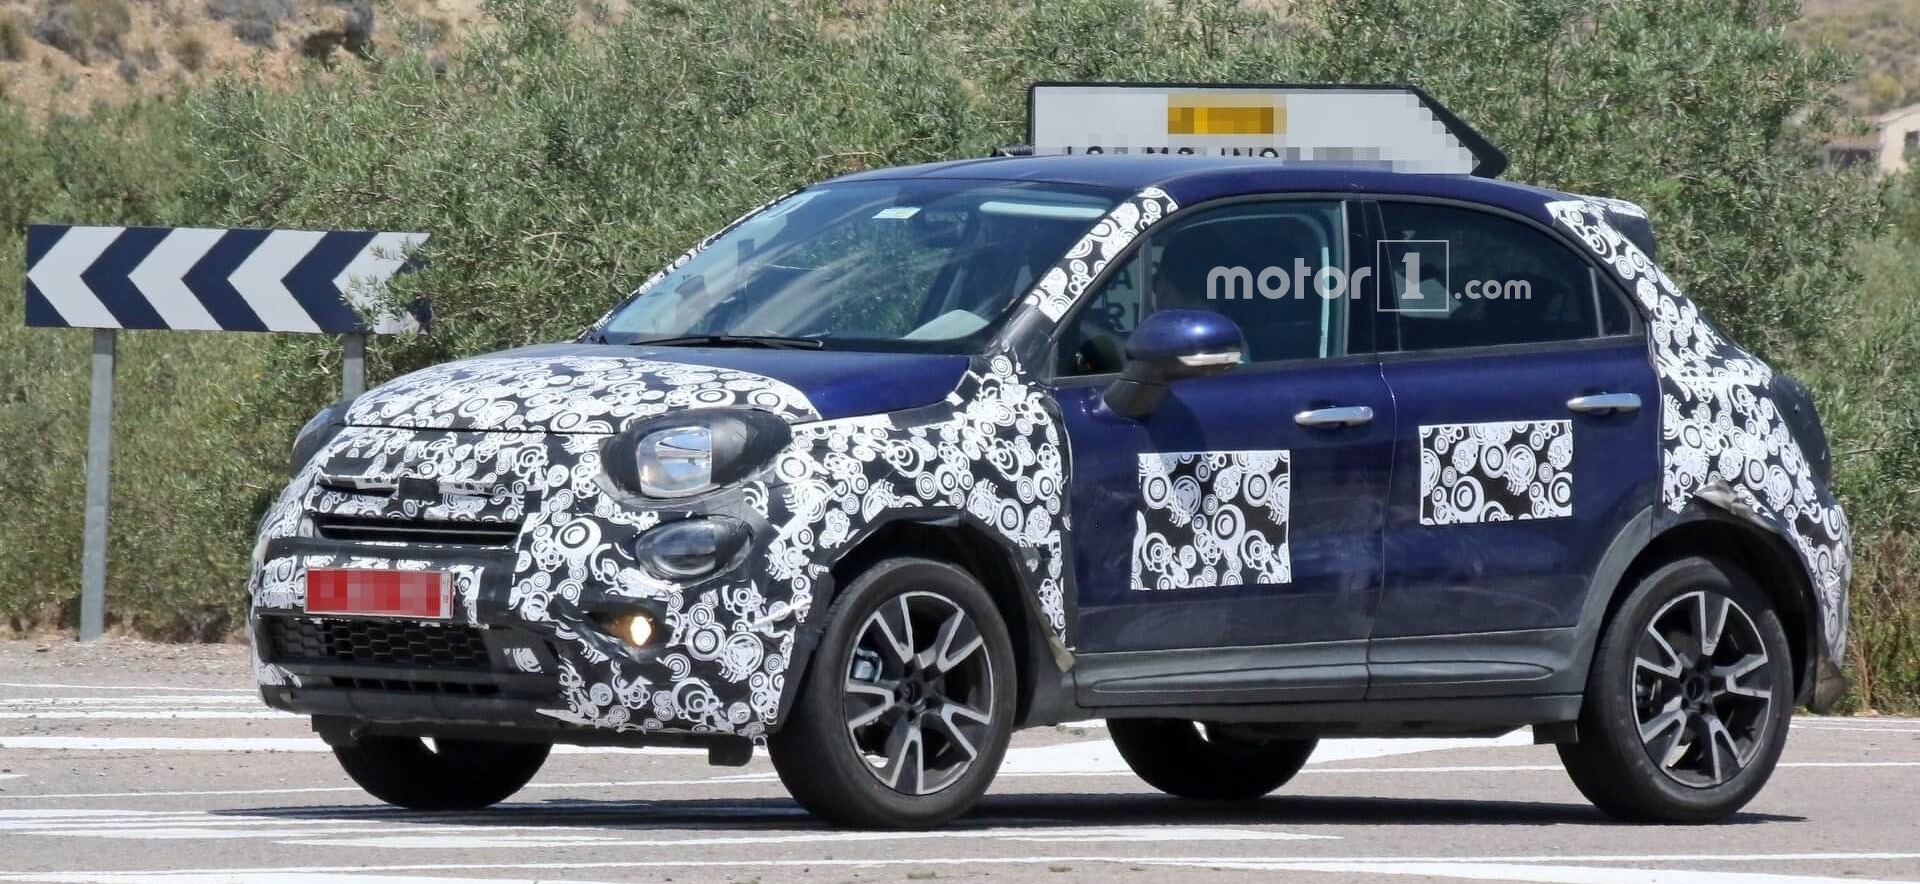 Fiat 500X Caught Hiding Minor Facelift Underneath Funky Camo